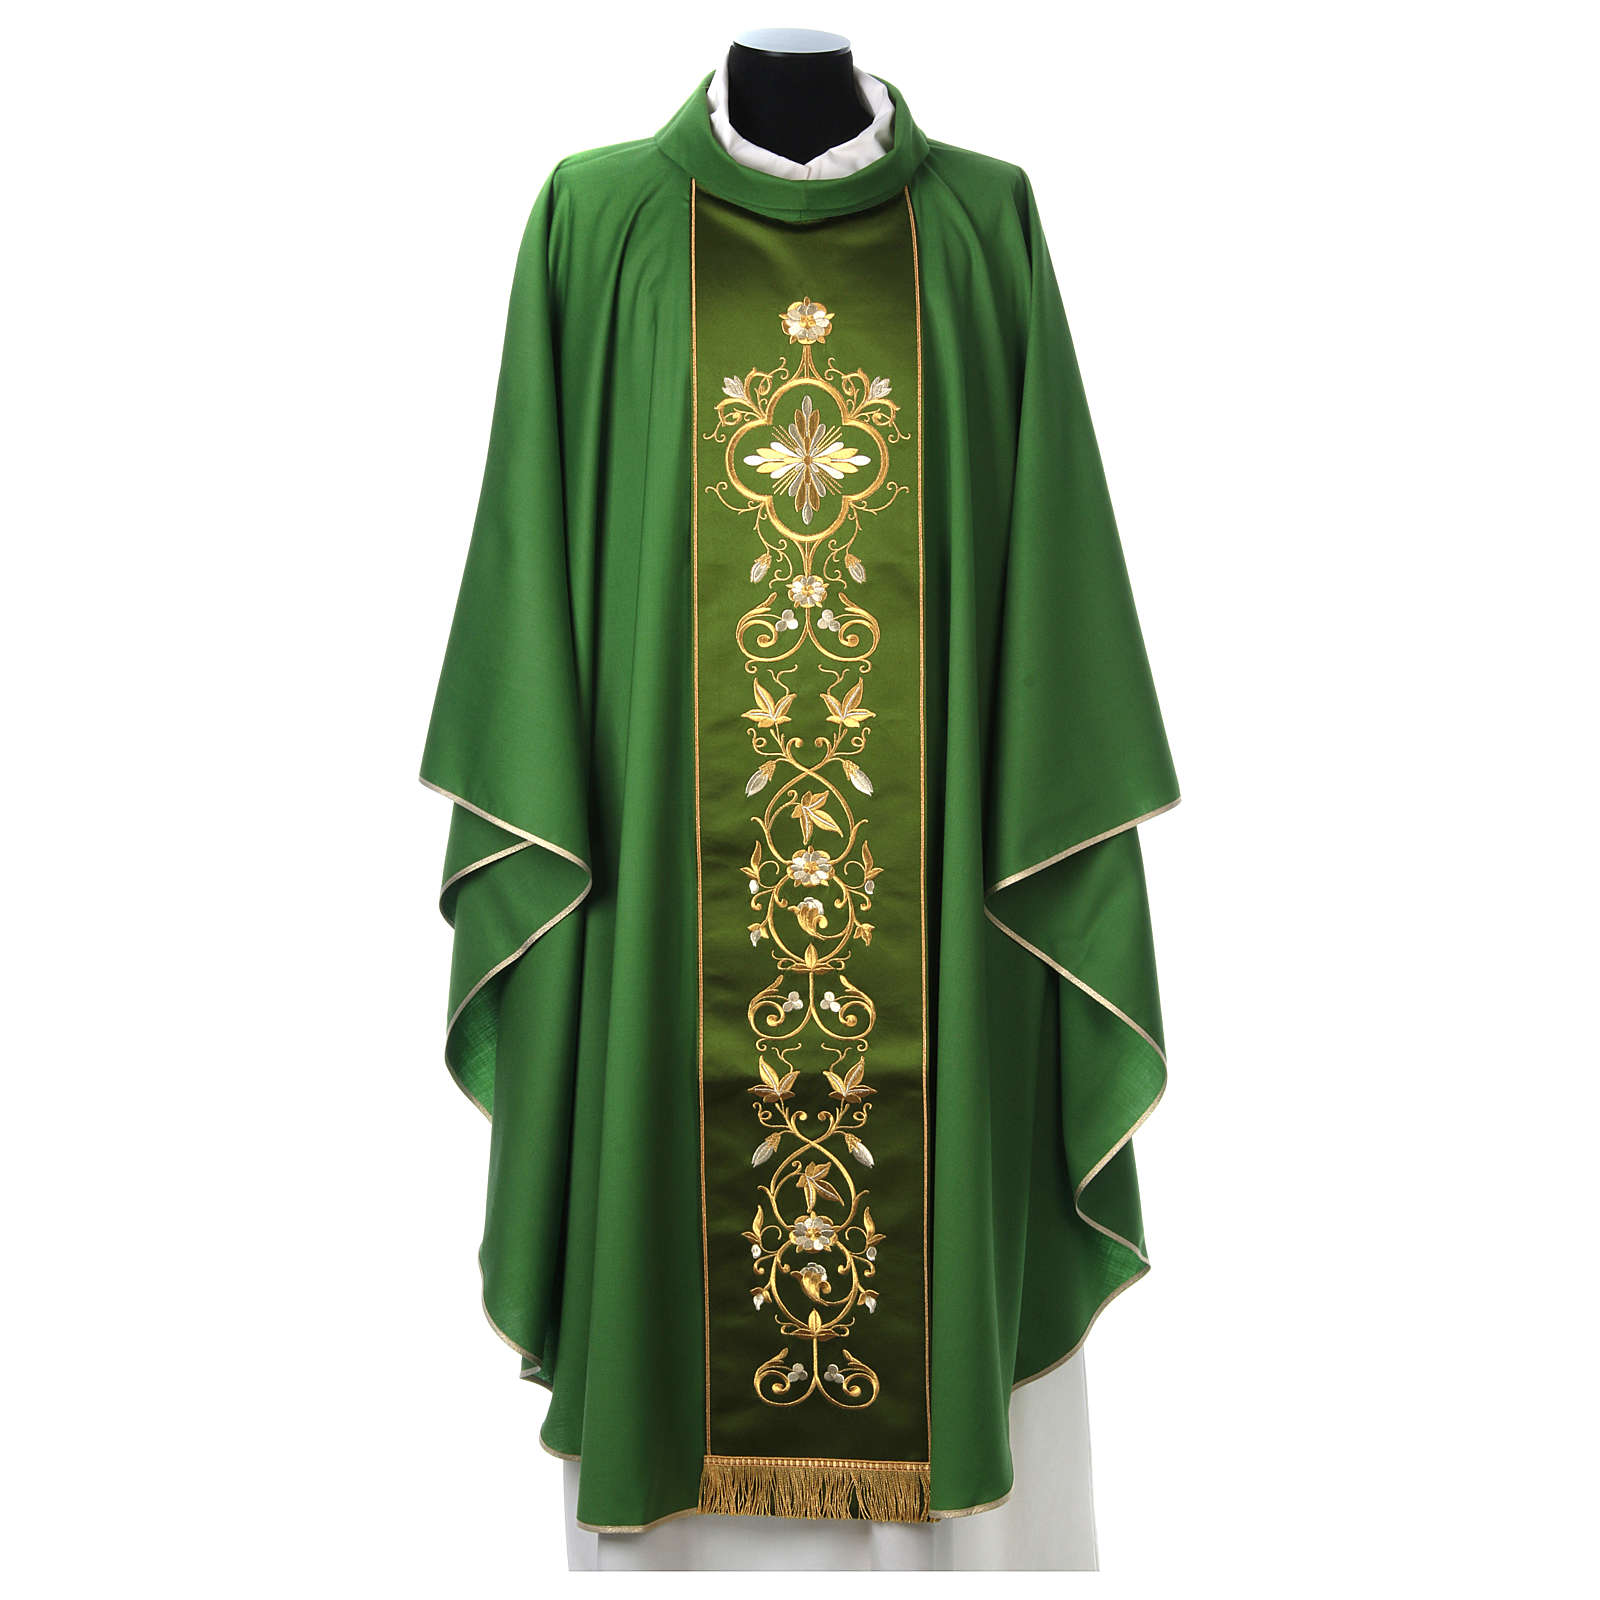 Wool Chasuble with gold embroidered orphrey